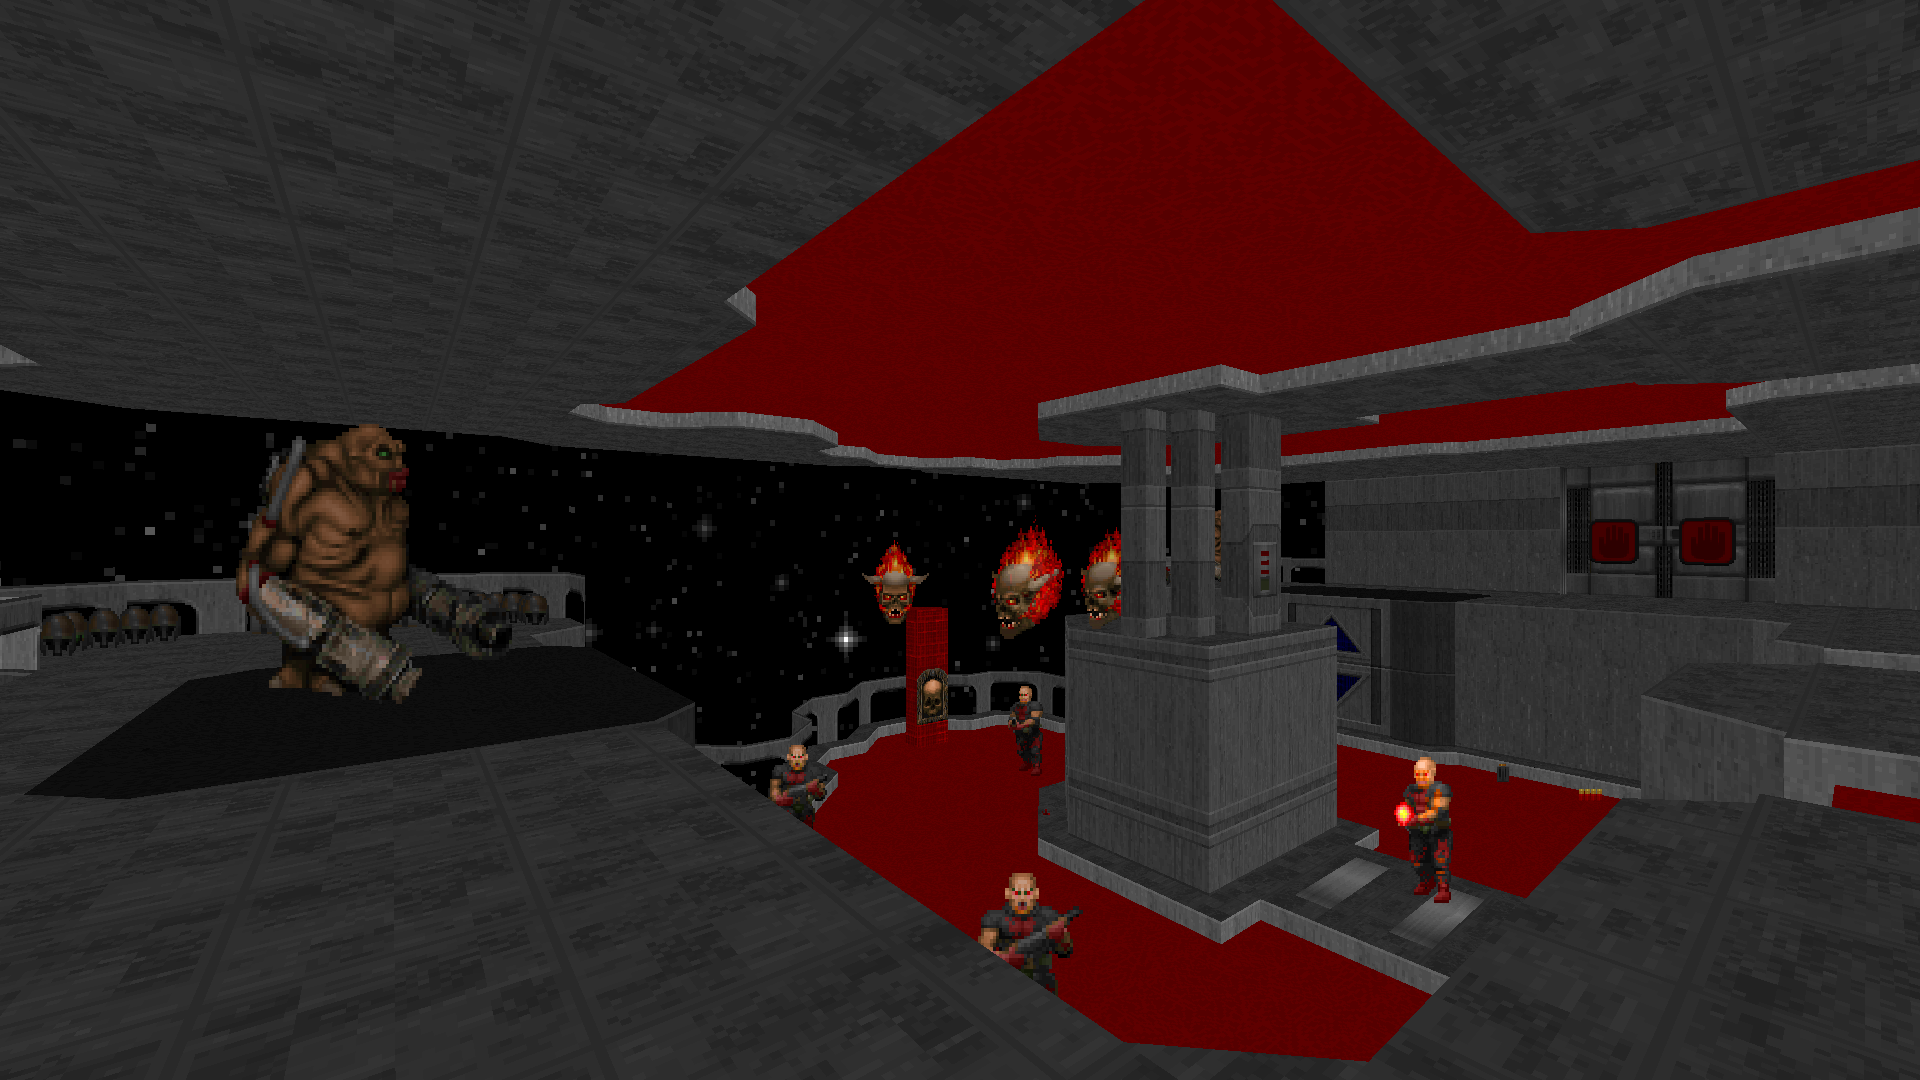 Screenshot_Doom_20200516_171140.png.779773a43b99c577f139cdf45c928541.png